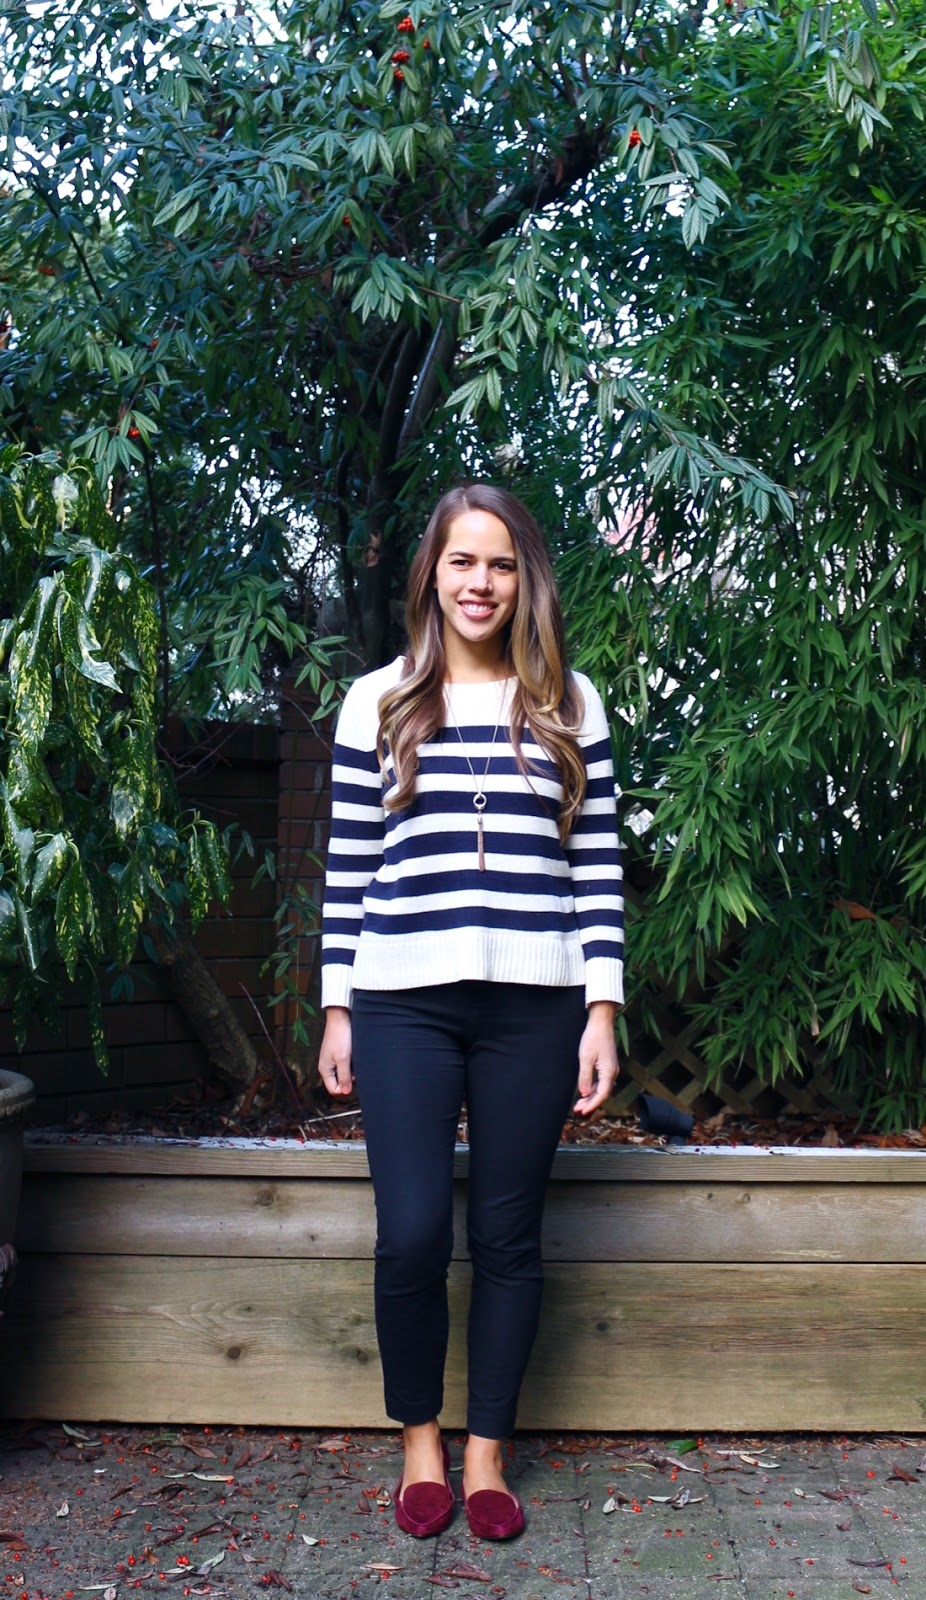 Jules in Flats - Striped Sweater + Red Flats for Work (Business Casual Winter Workwear on a Budget)